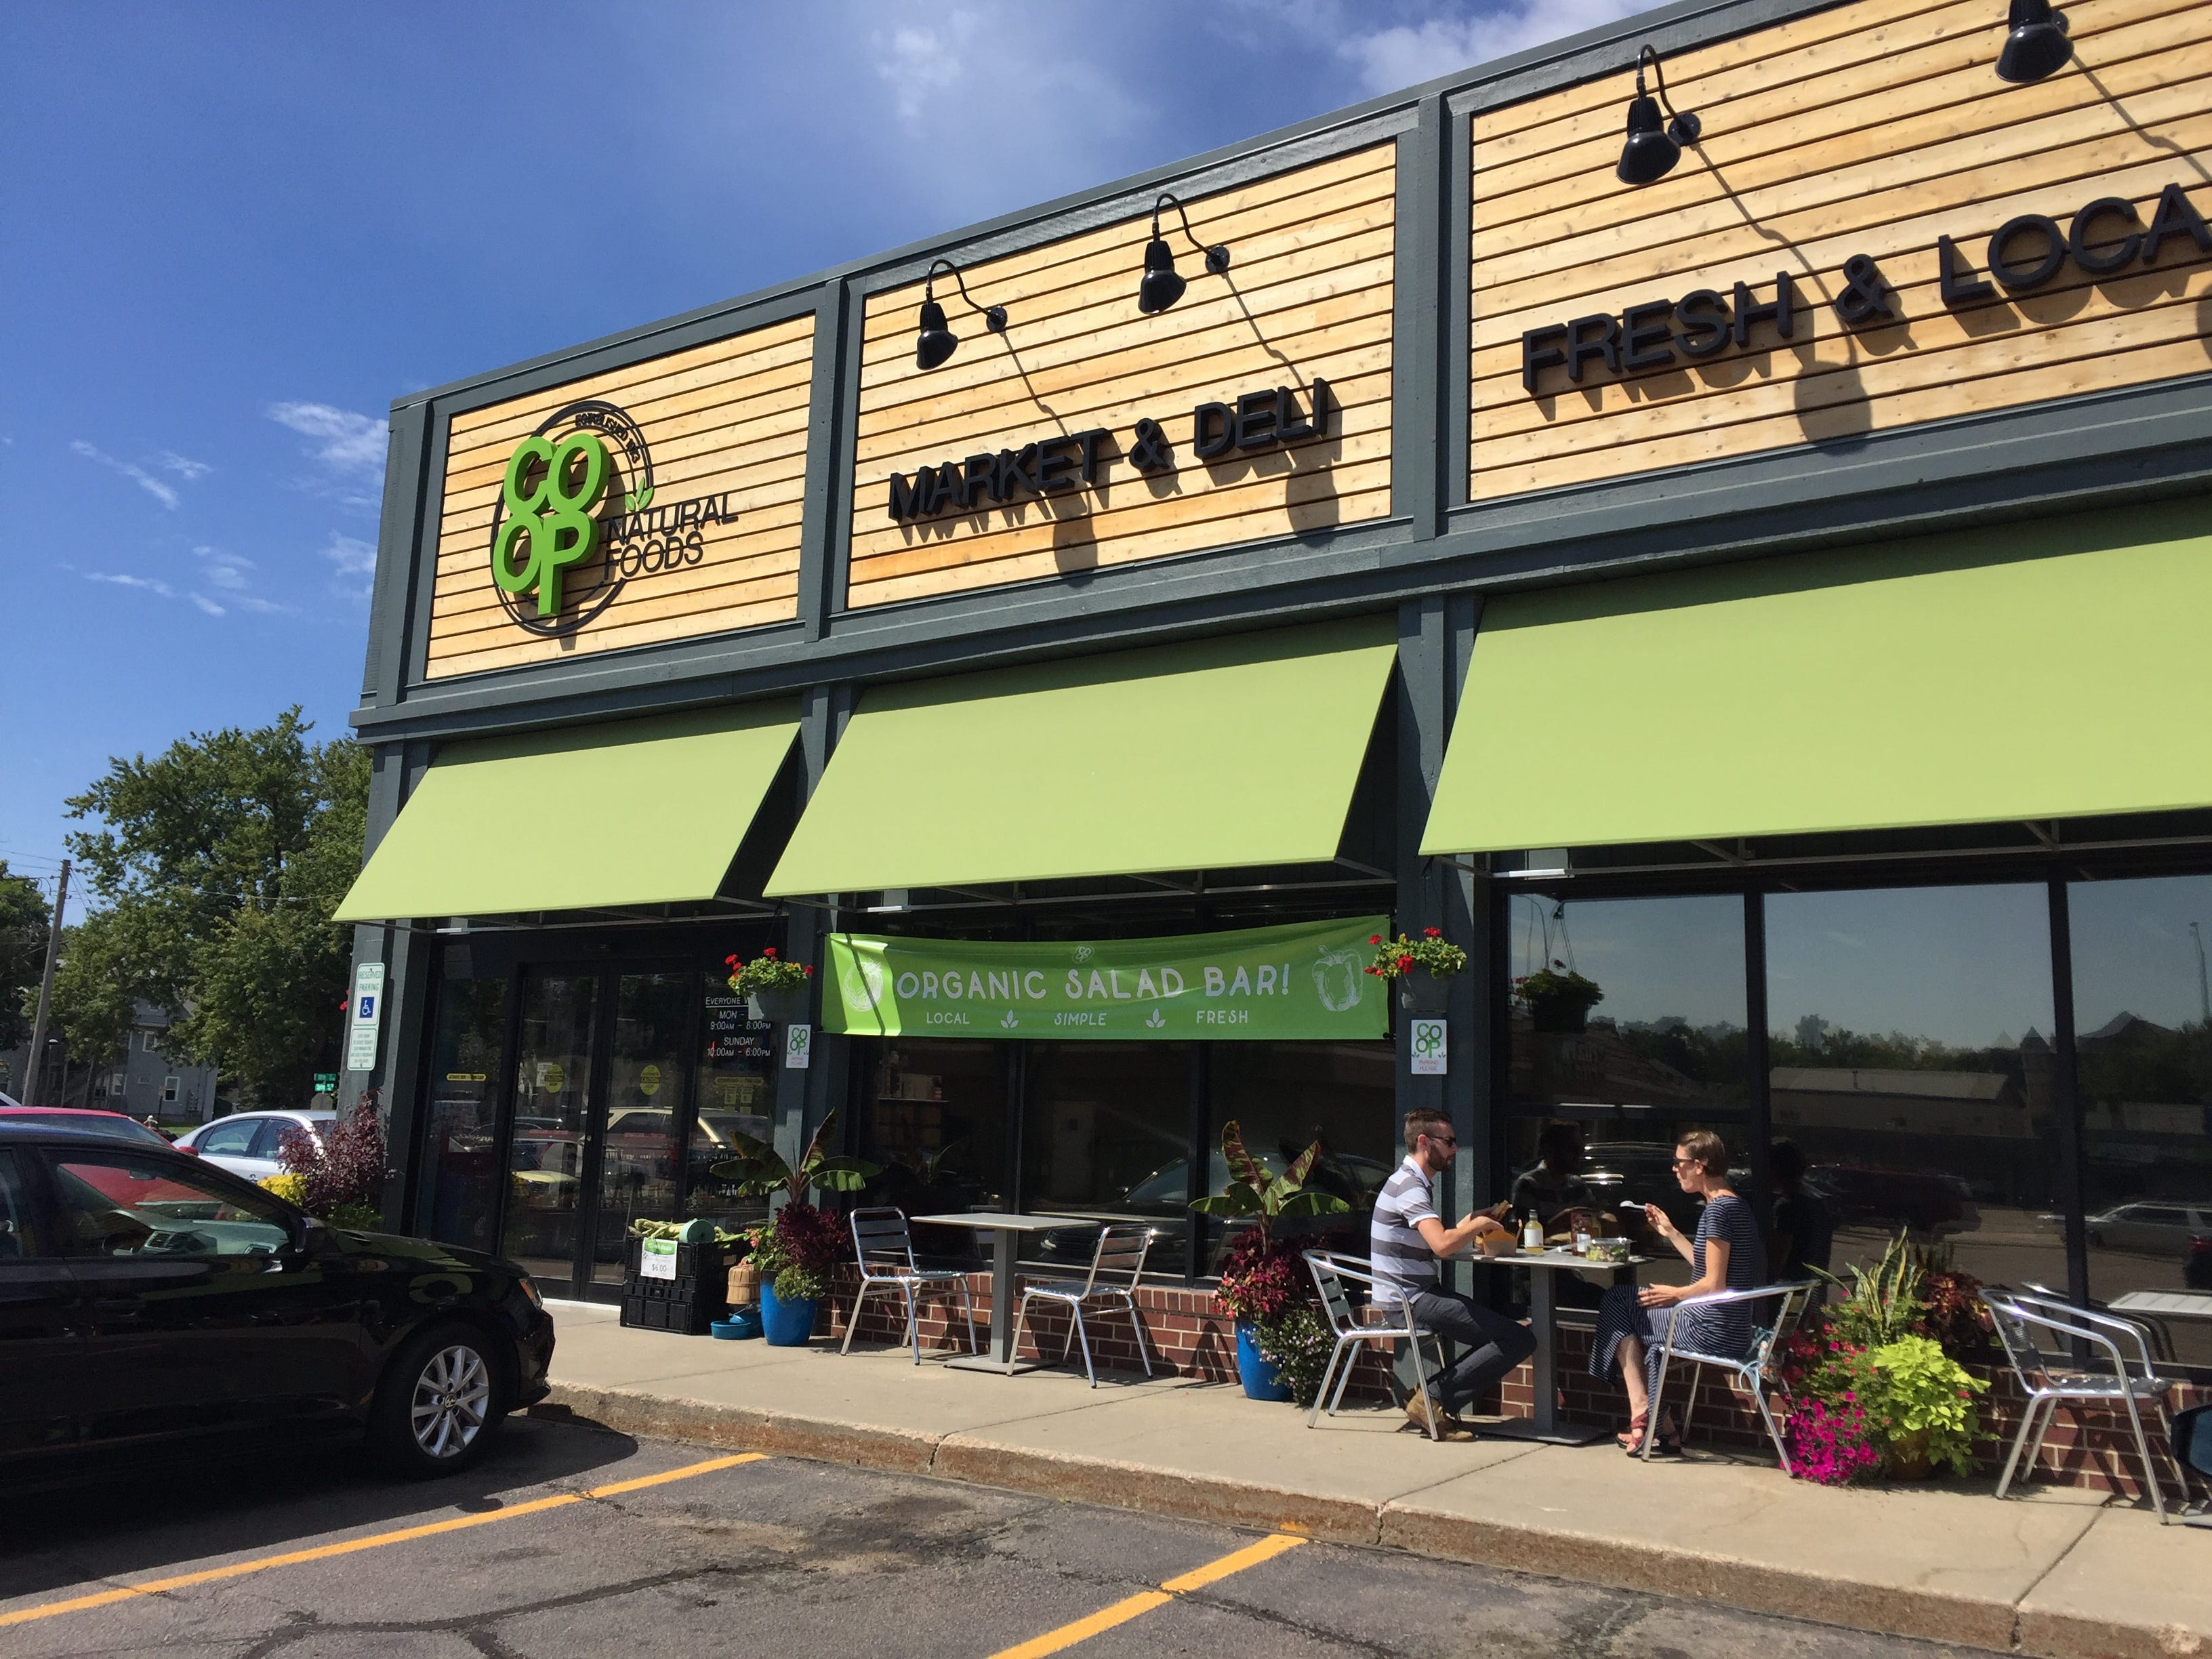 Co-op Natural Foods plans $3 dinner, for a good cause. Here's how you can take part in it. | Argus Leader